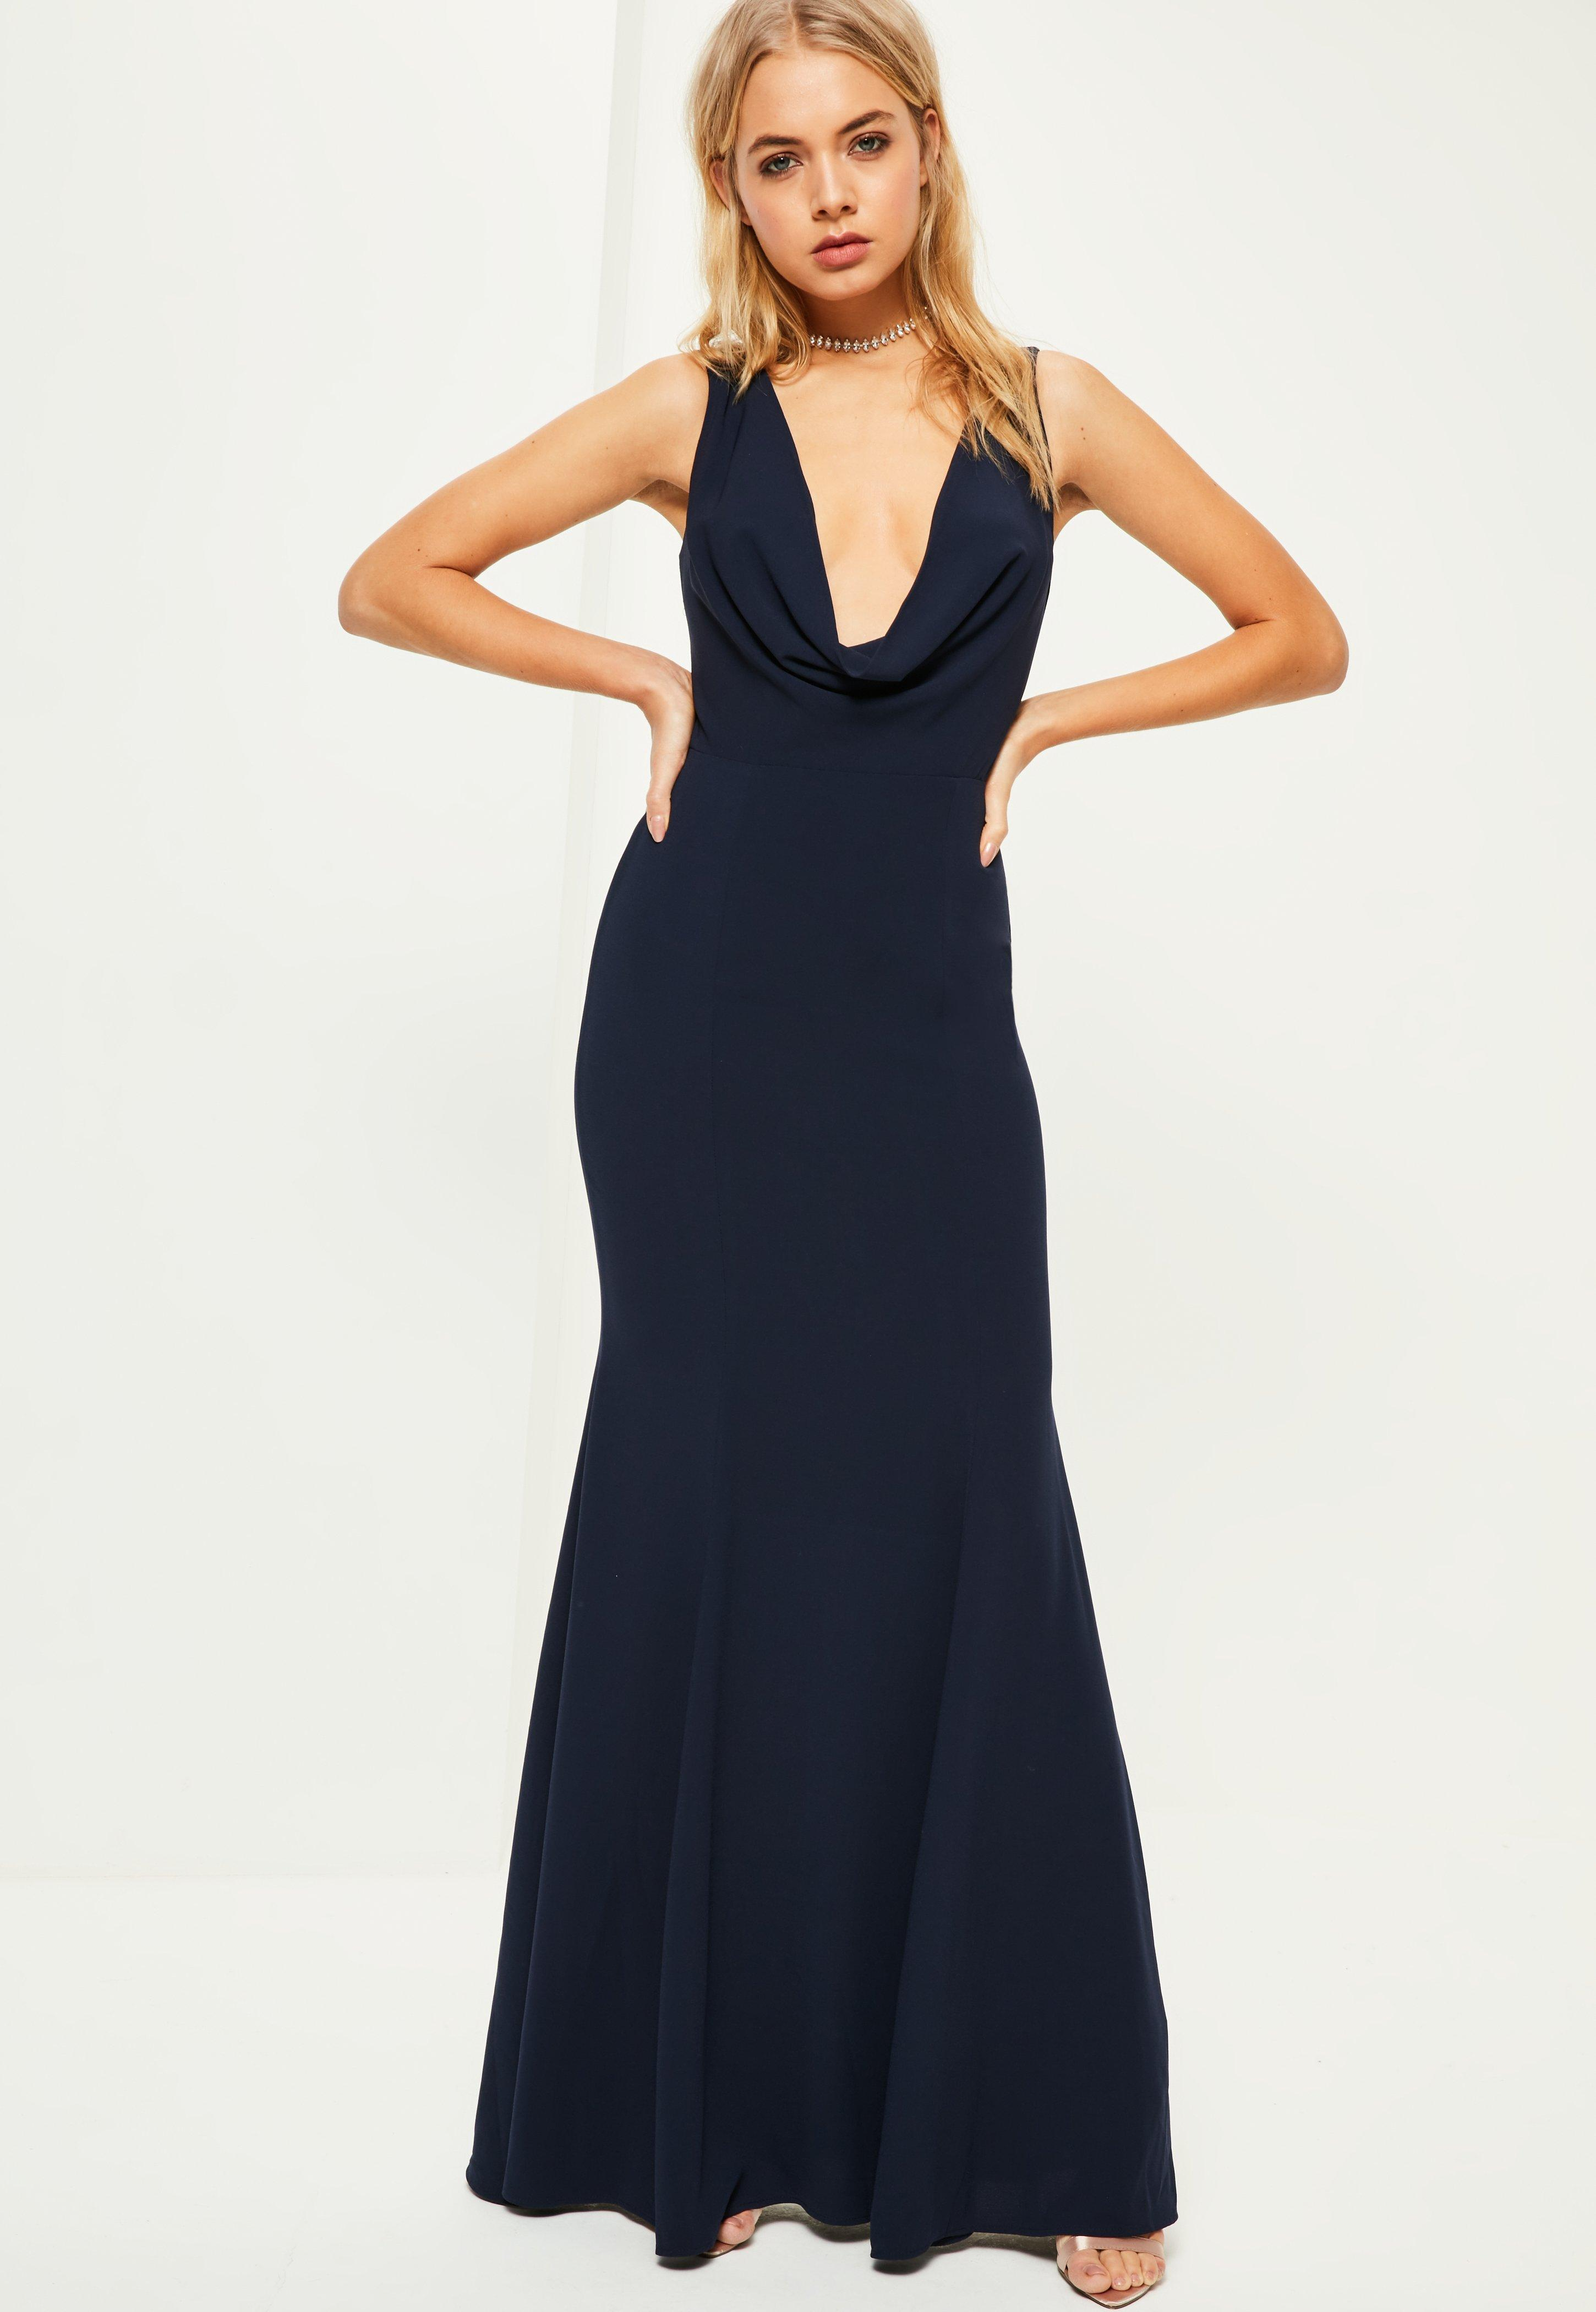 Wedding Dresses Formal formal dresses ball prom online missguided australia navy cowl neck maxi dress dress